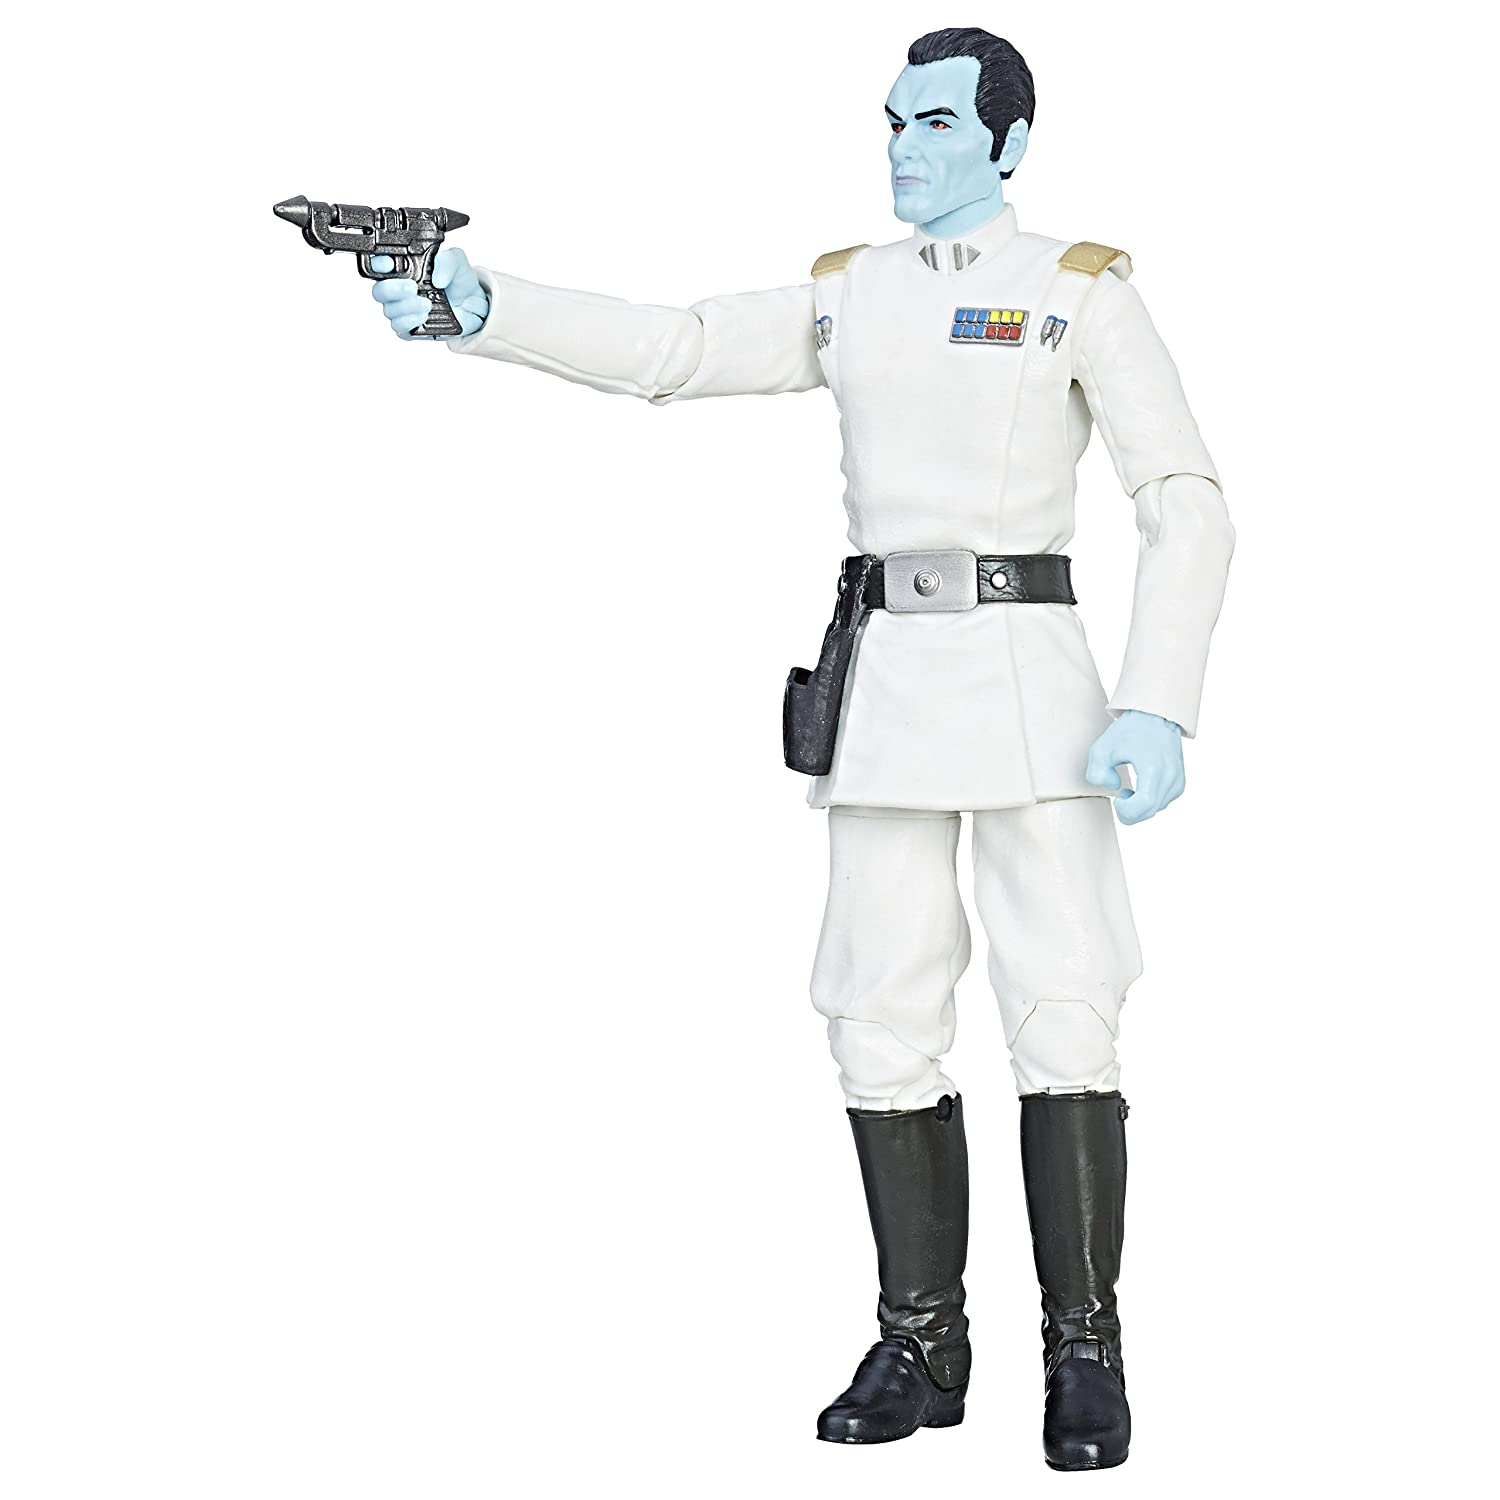 Star Wars The Black Series Grand Admiral Thrawn 6inch Figure